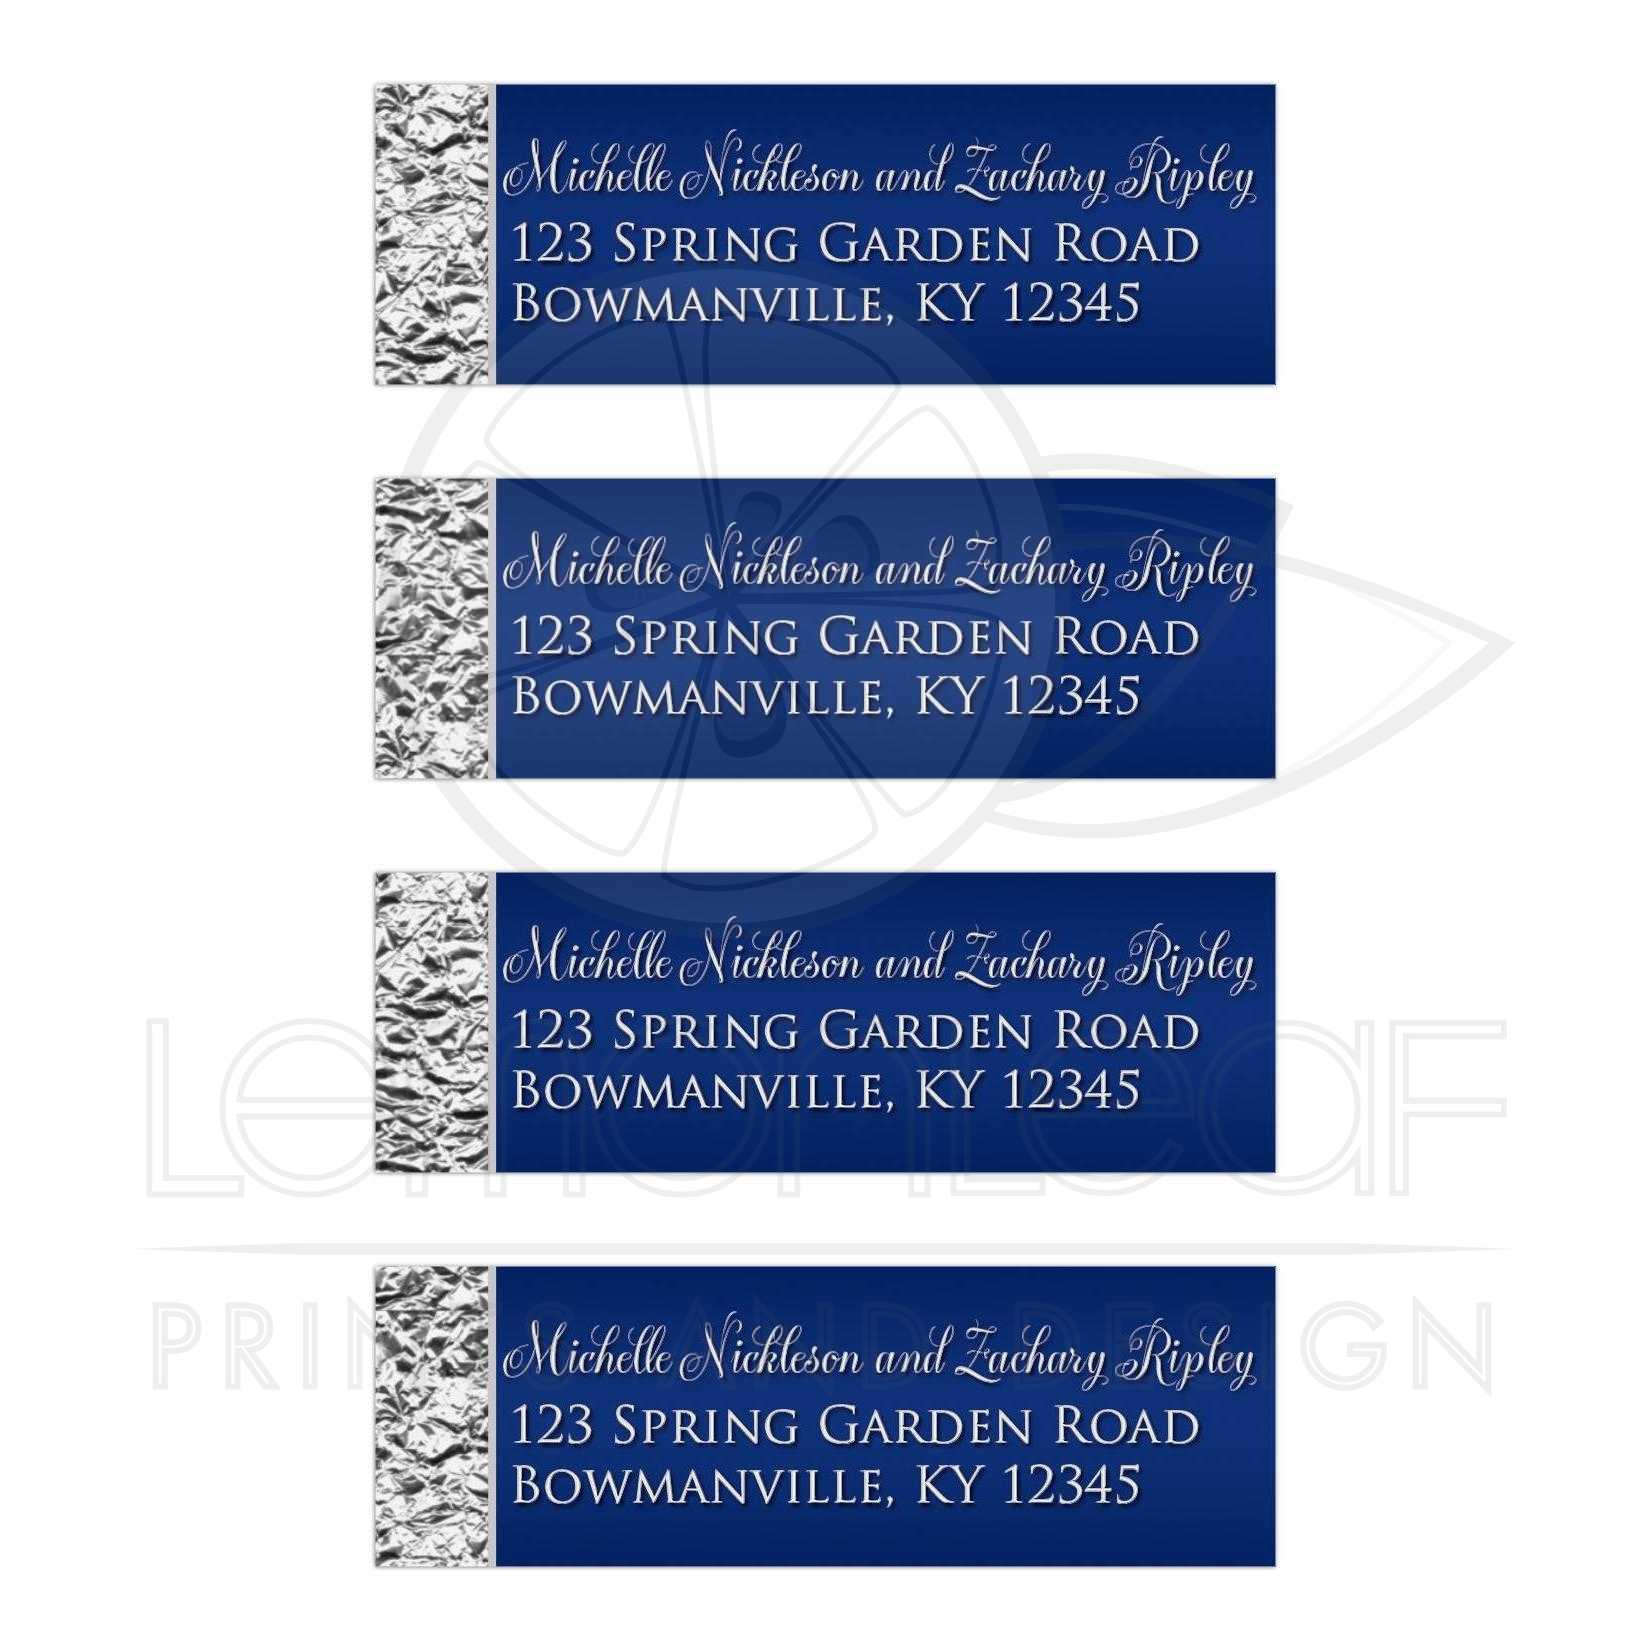 personalized address labels navy blue silver faux foil